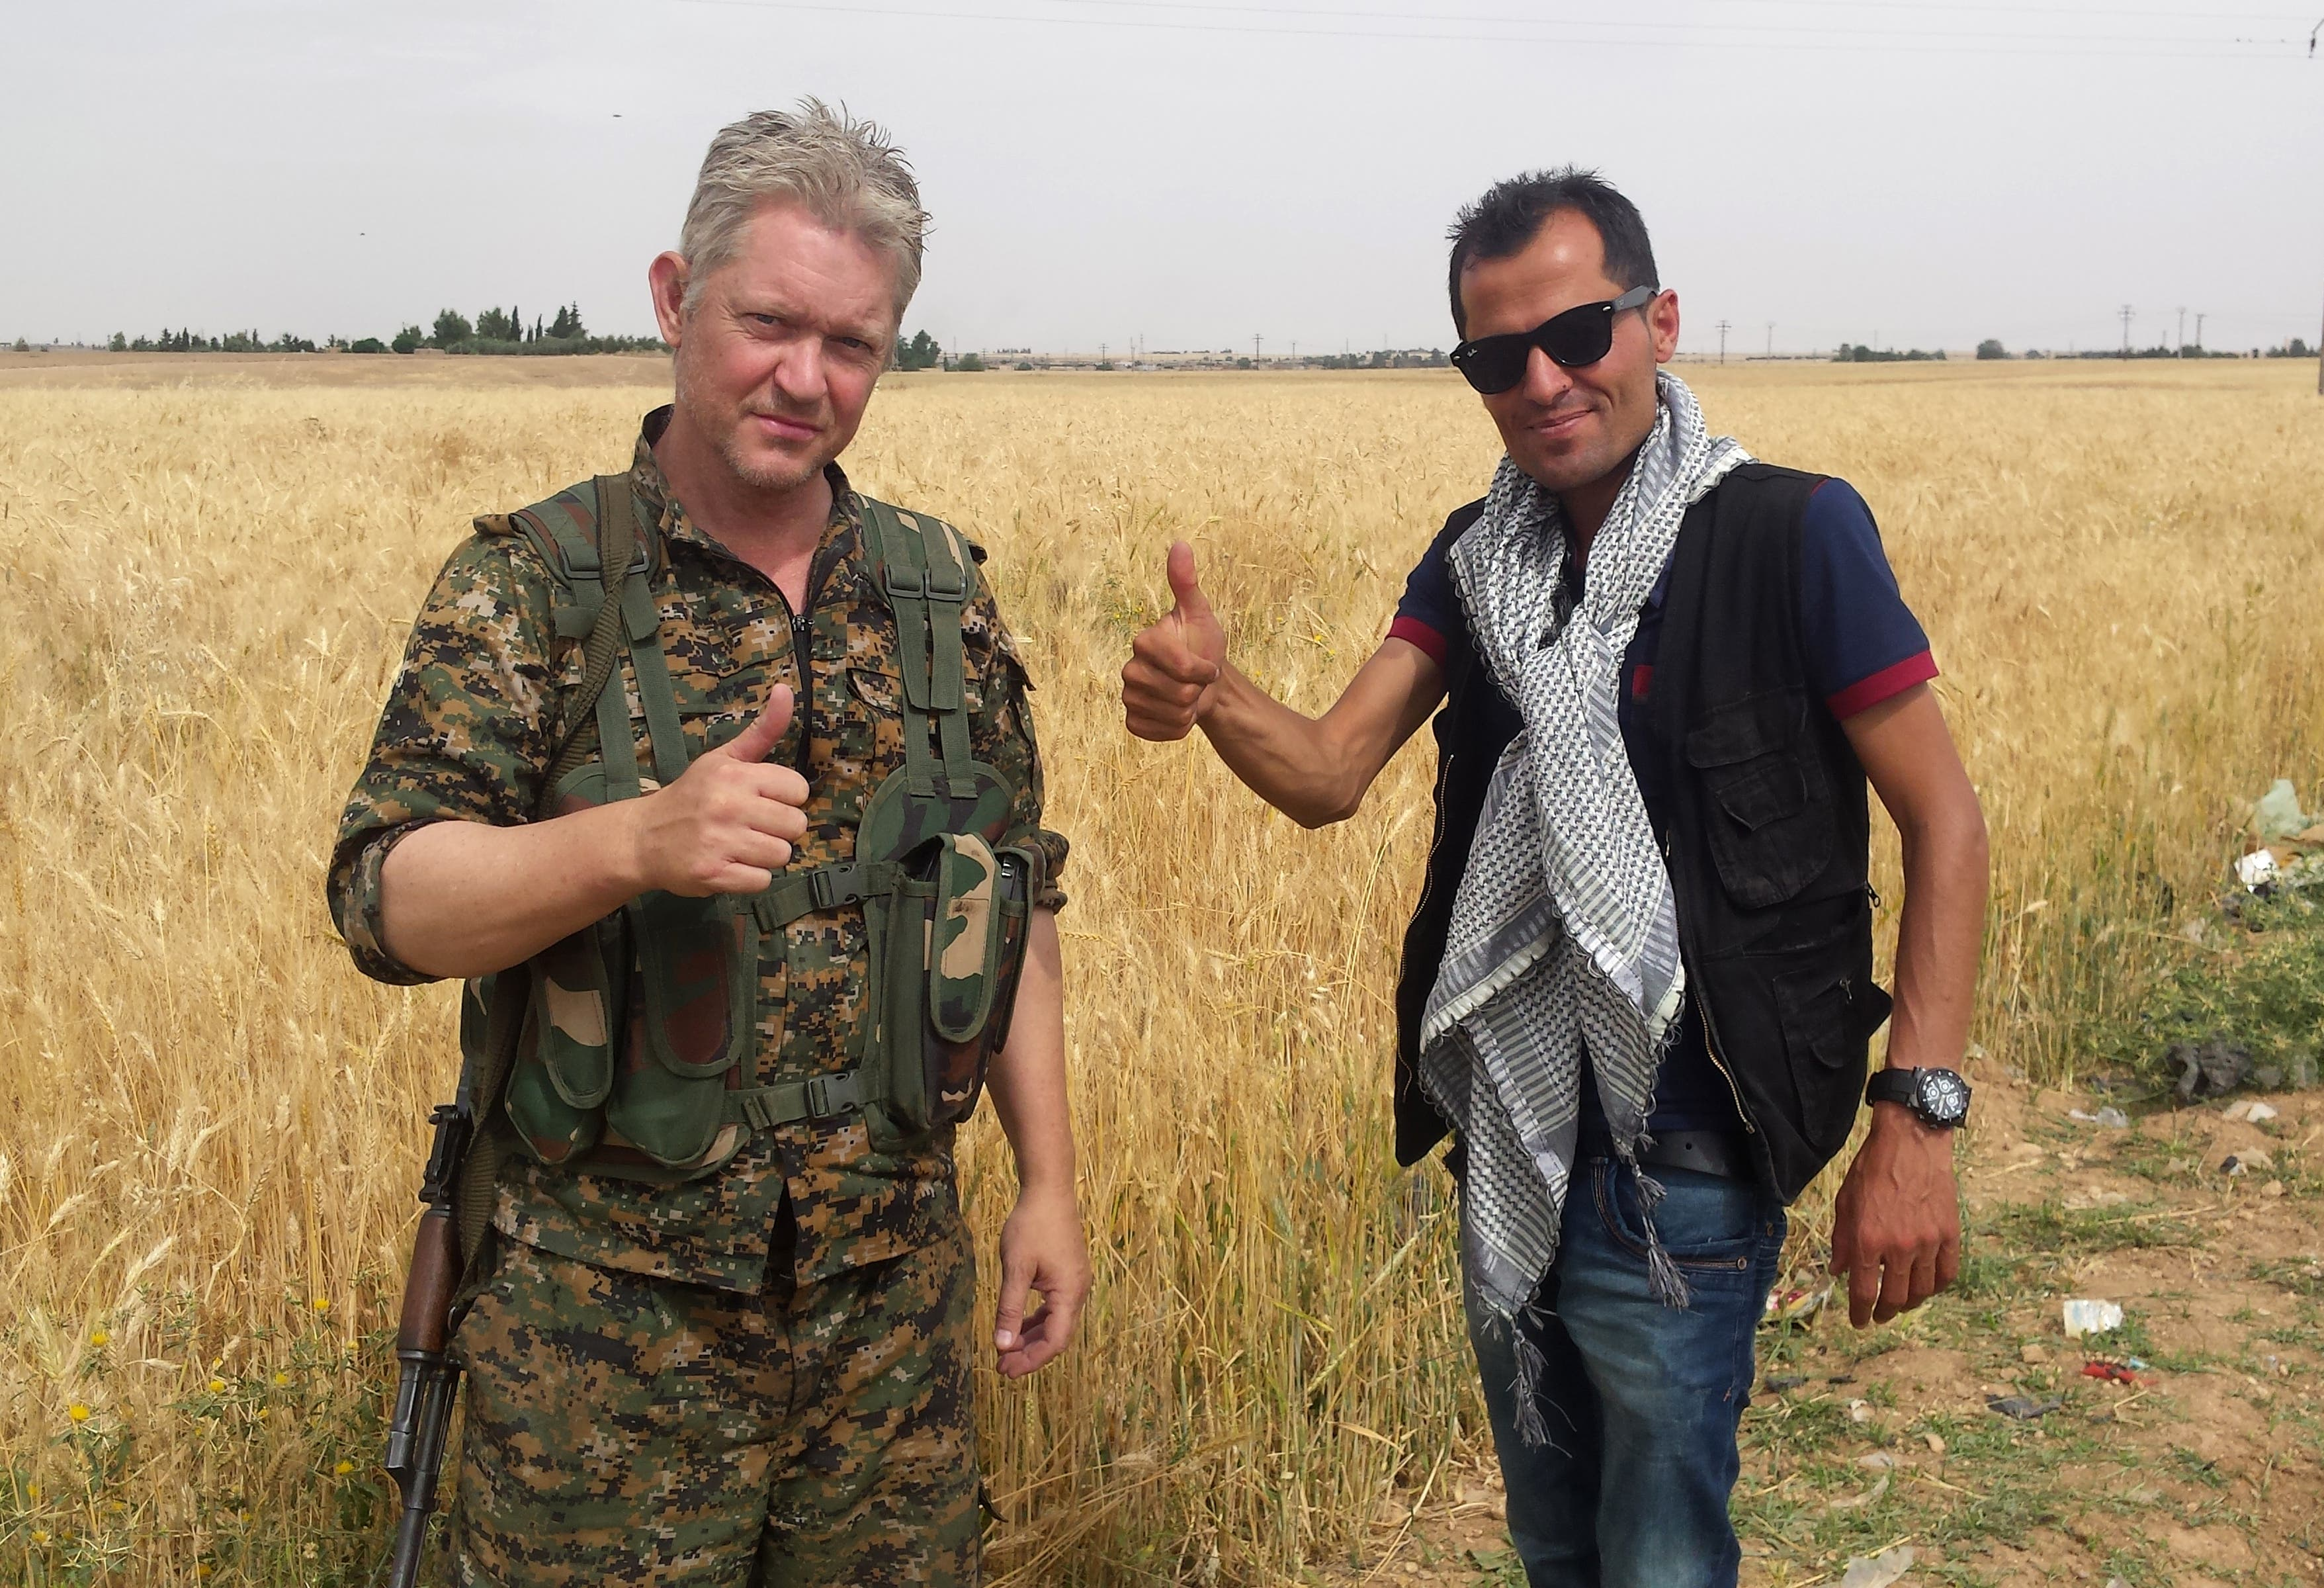 Michael Enright, left, a British actor who has had minor roles in Hollywood films, gives a thumbs up with Kurdish journalist Mohammed Hassan, right, as he holds his AK-47 and wears the Kurdish fighters military uniform. (AP)